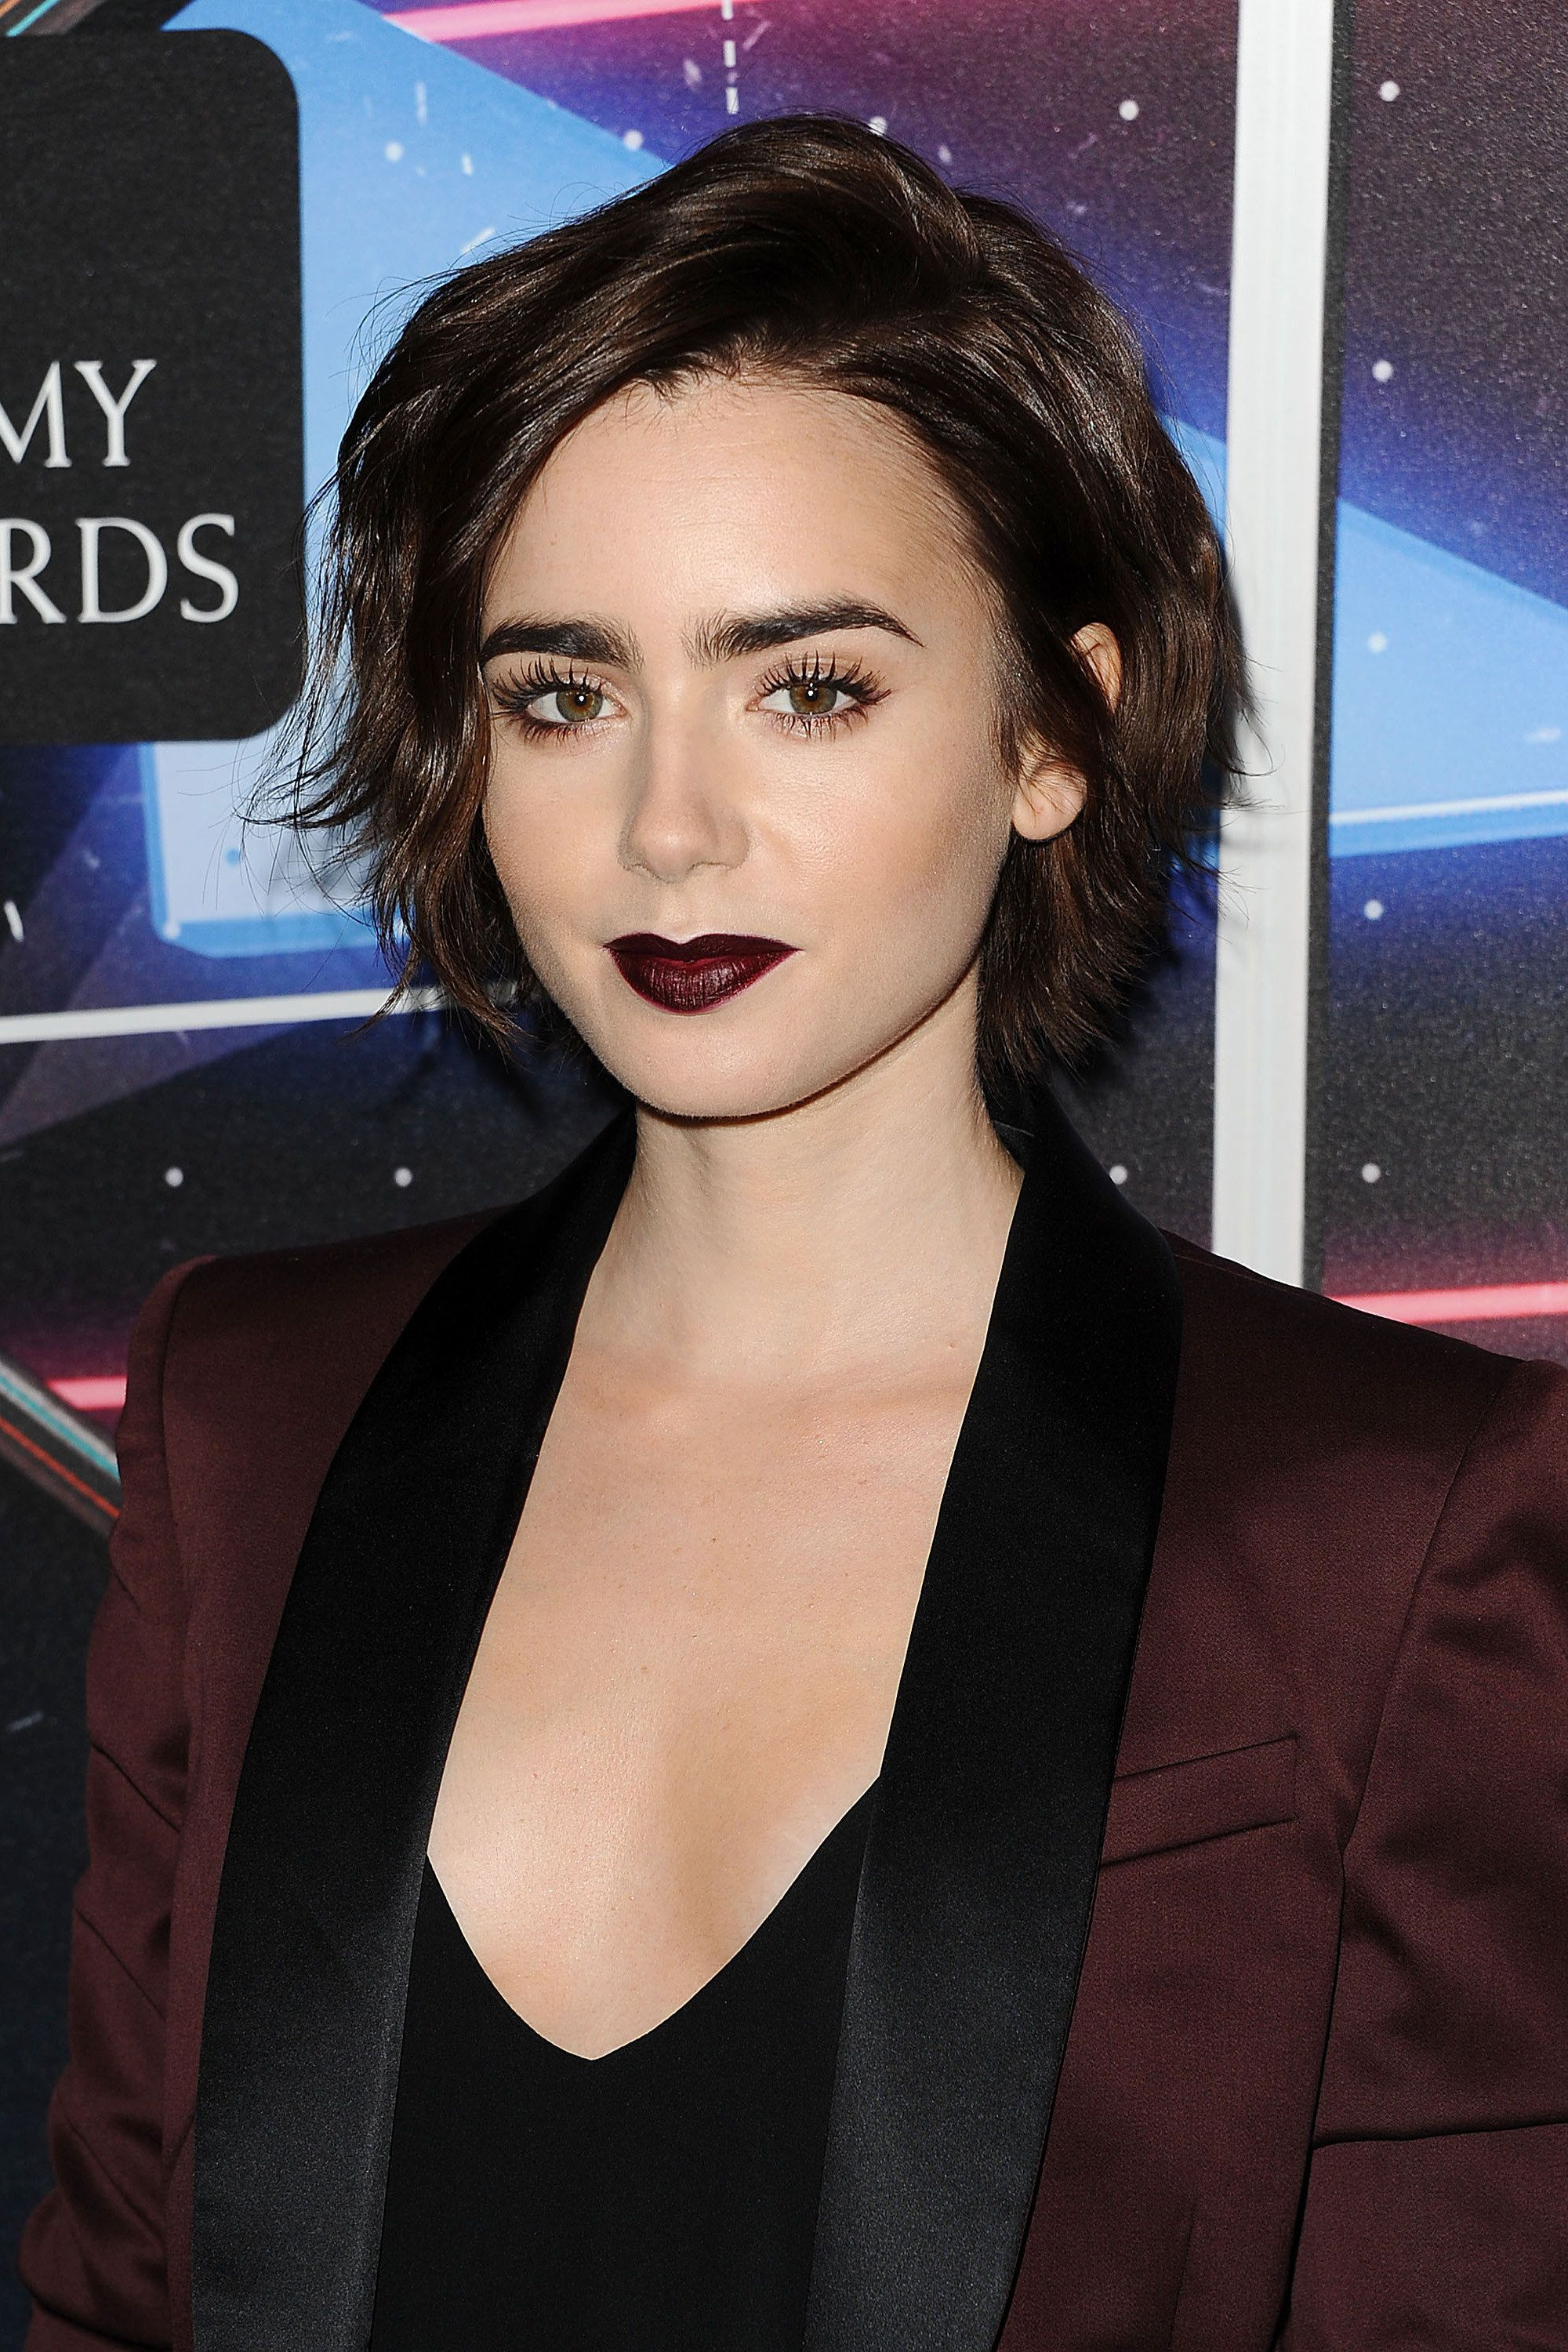 The Beauty Evolution of Lily Collins, from Classic Sophisticate to Red Carpet Trendsetter | Teen Vogue